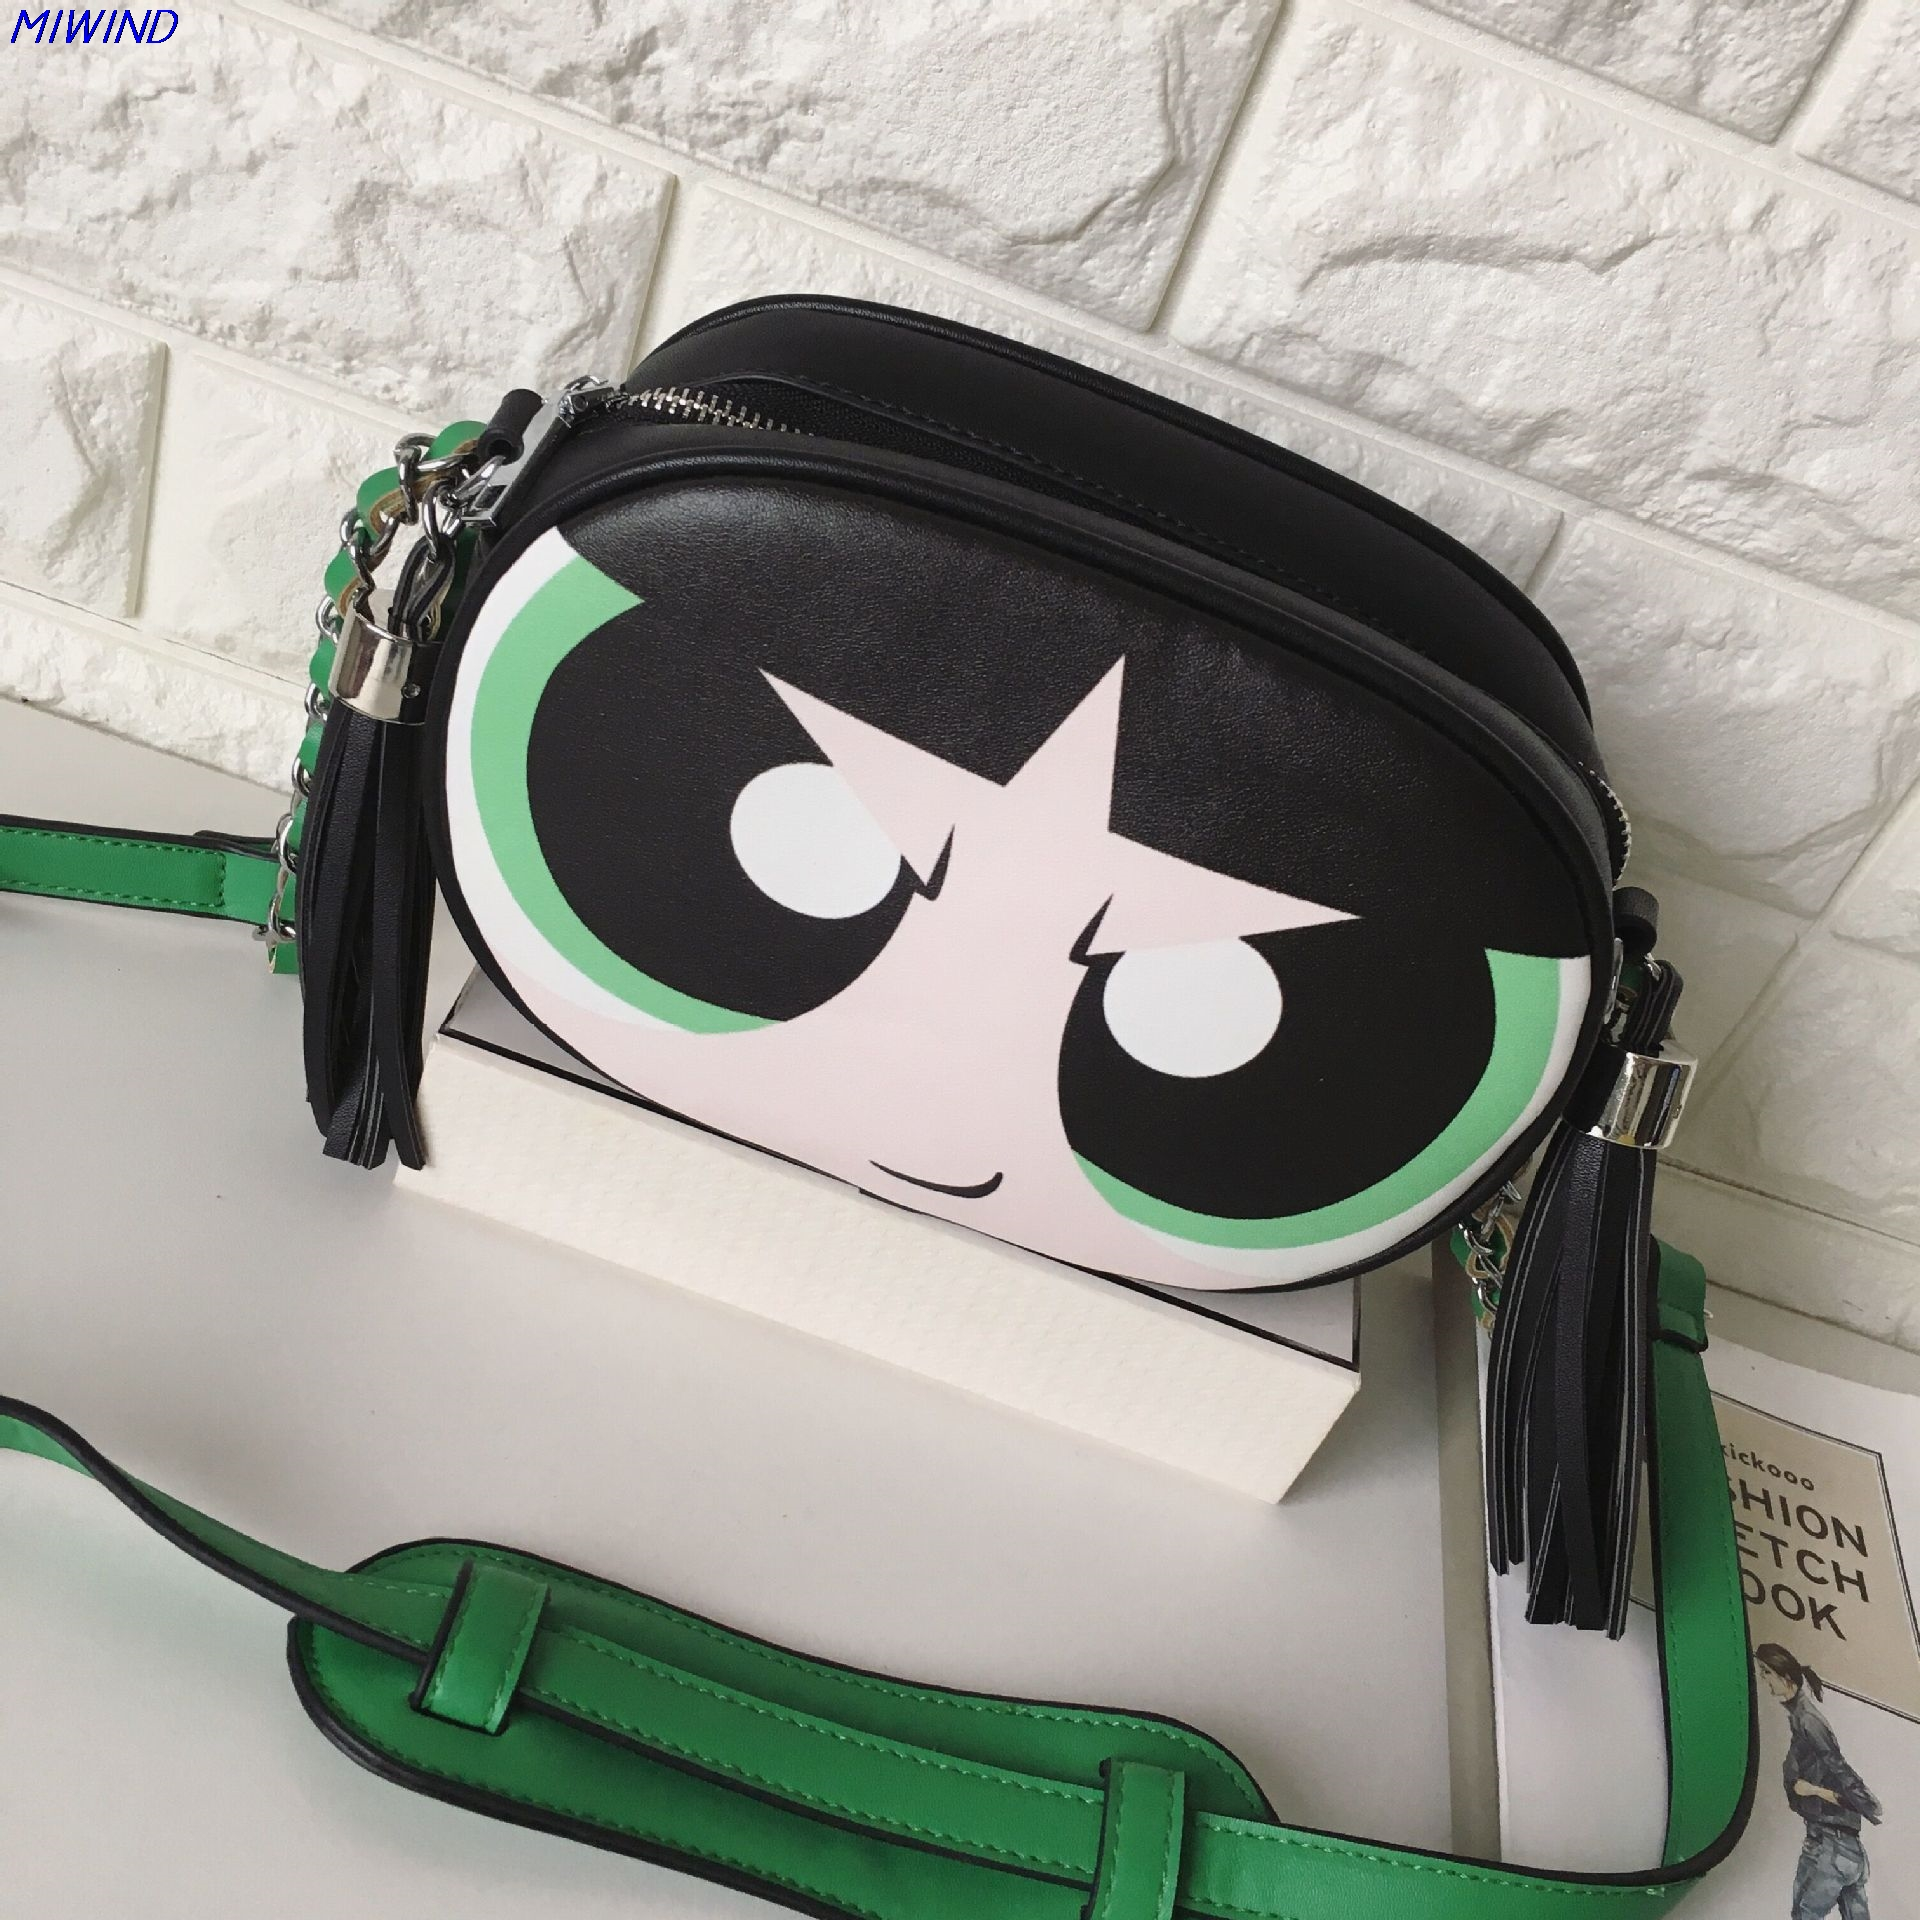 334b486af5 MIWIND Women Famous Brands Chain Shoulder Bag Powerpuff Girls Flap Bag  Ladies Handbag Clutch Purse-in Shoulder Bags from Luggage & Bags on  Aliexpress.com ...